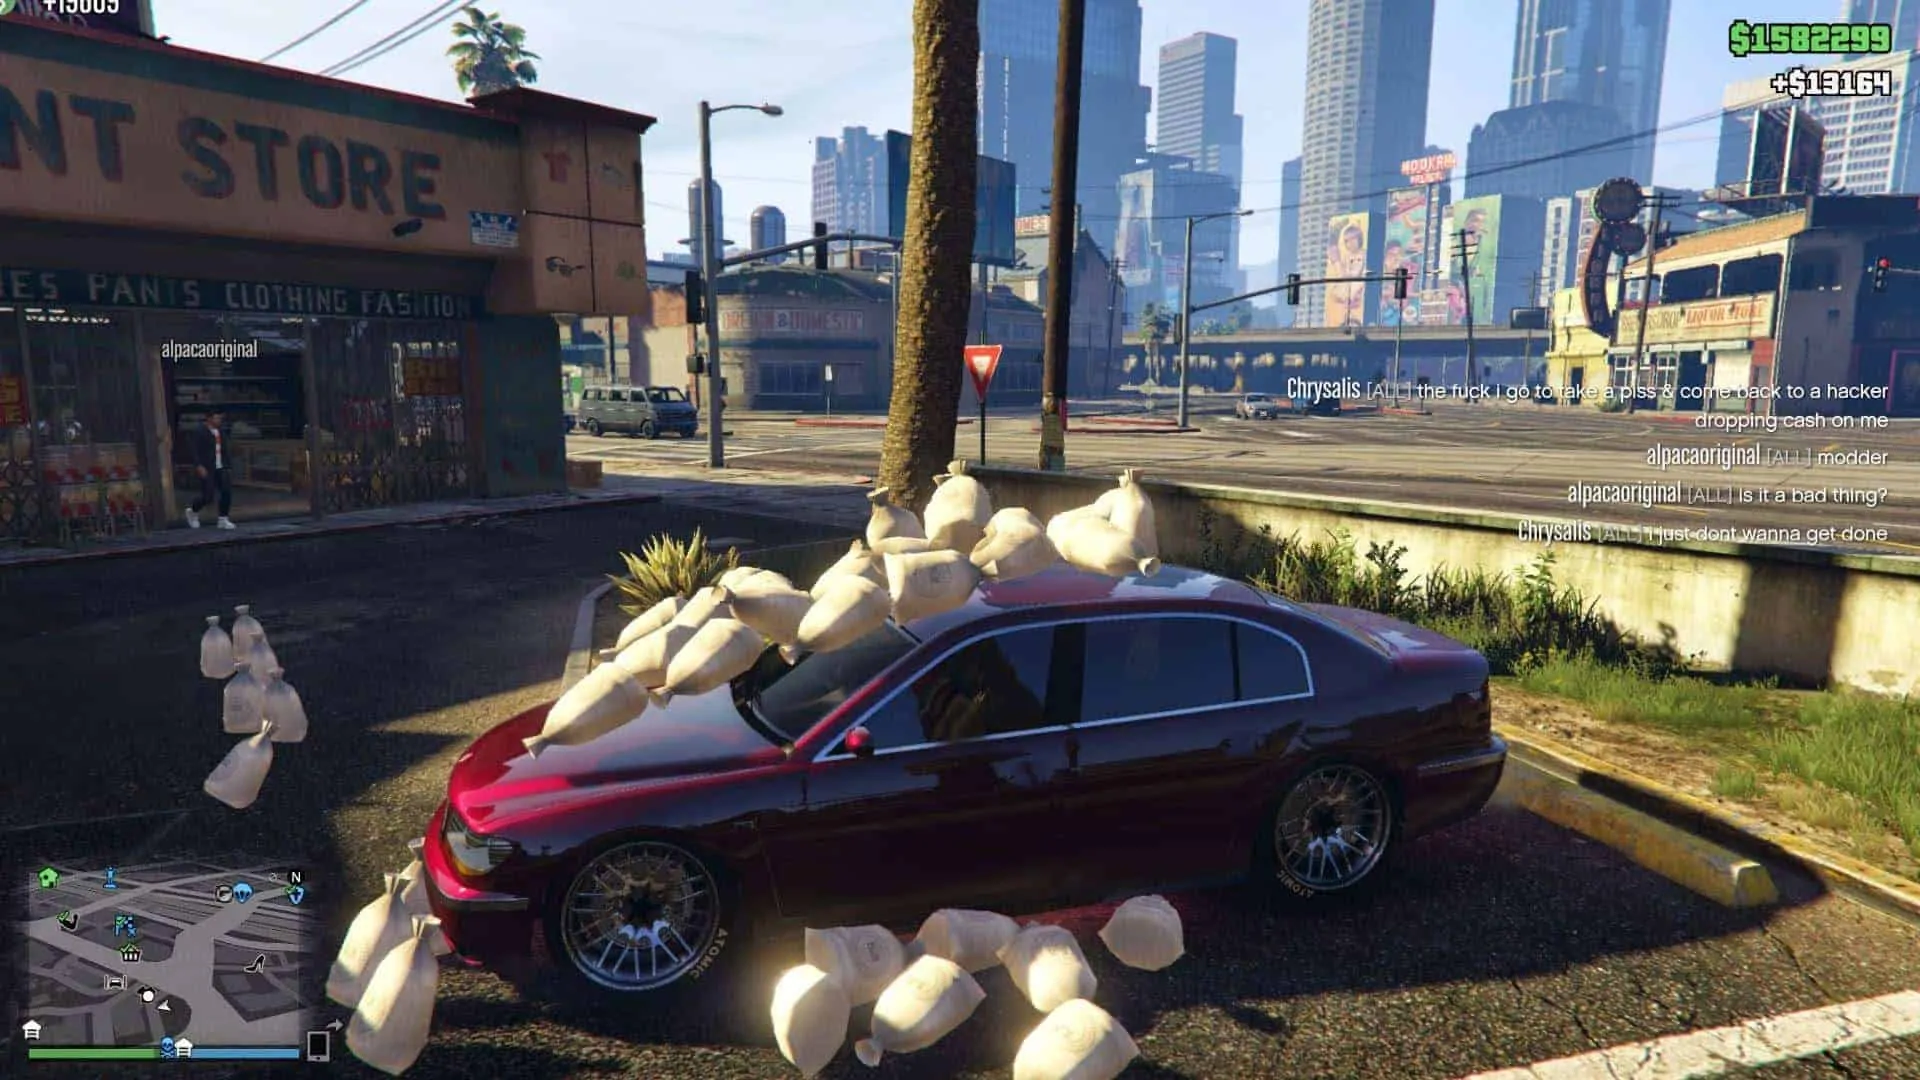 GTA 5 Money Cheats: Is there a money cheat in story mode or GTA ...